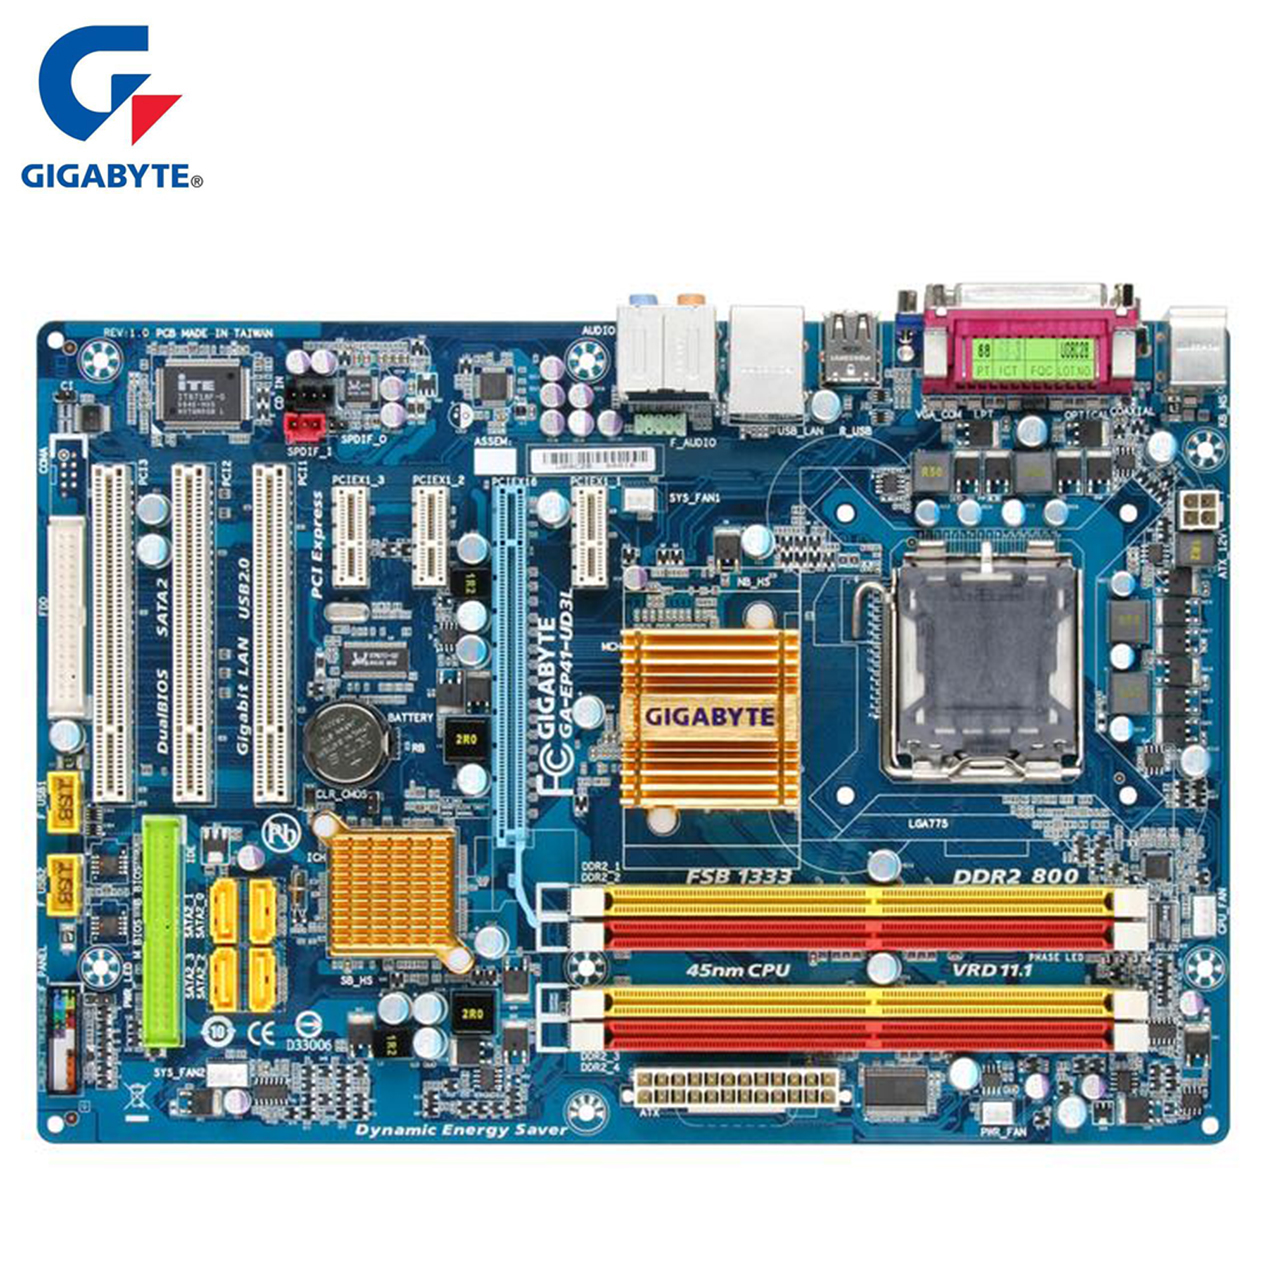 Gigabyte GA-EP41-US3L Motherboard For Intel G41 DDR2 USB2.0 16GB SATA II LGA 775 EP41 US3L Desktop Mainboard Systemboard Used asus p5g41t m lx3 plus motherboard lga 775 ddr3 8gb for intel g41 p5g41t m lx3 plus desktop mainboard systemboard sata ii used